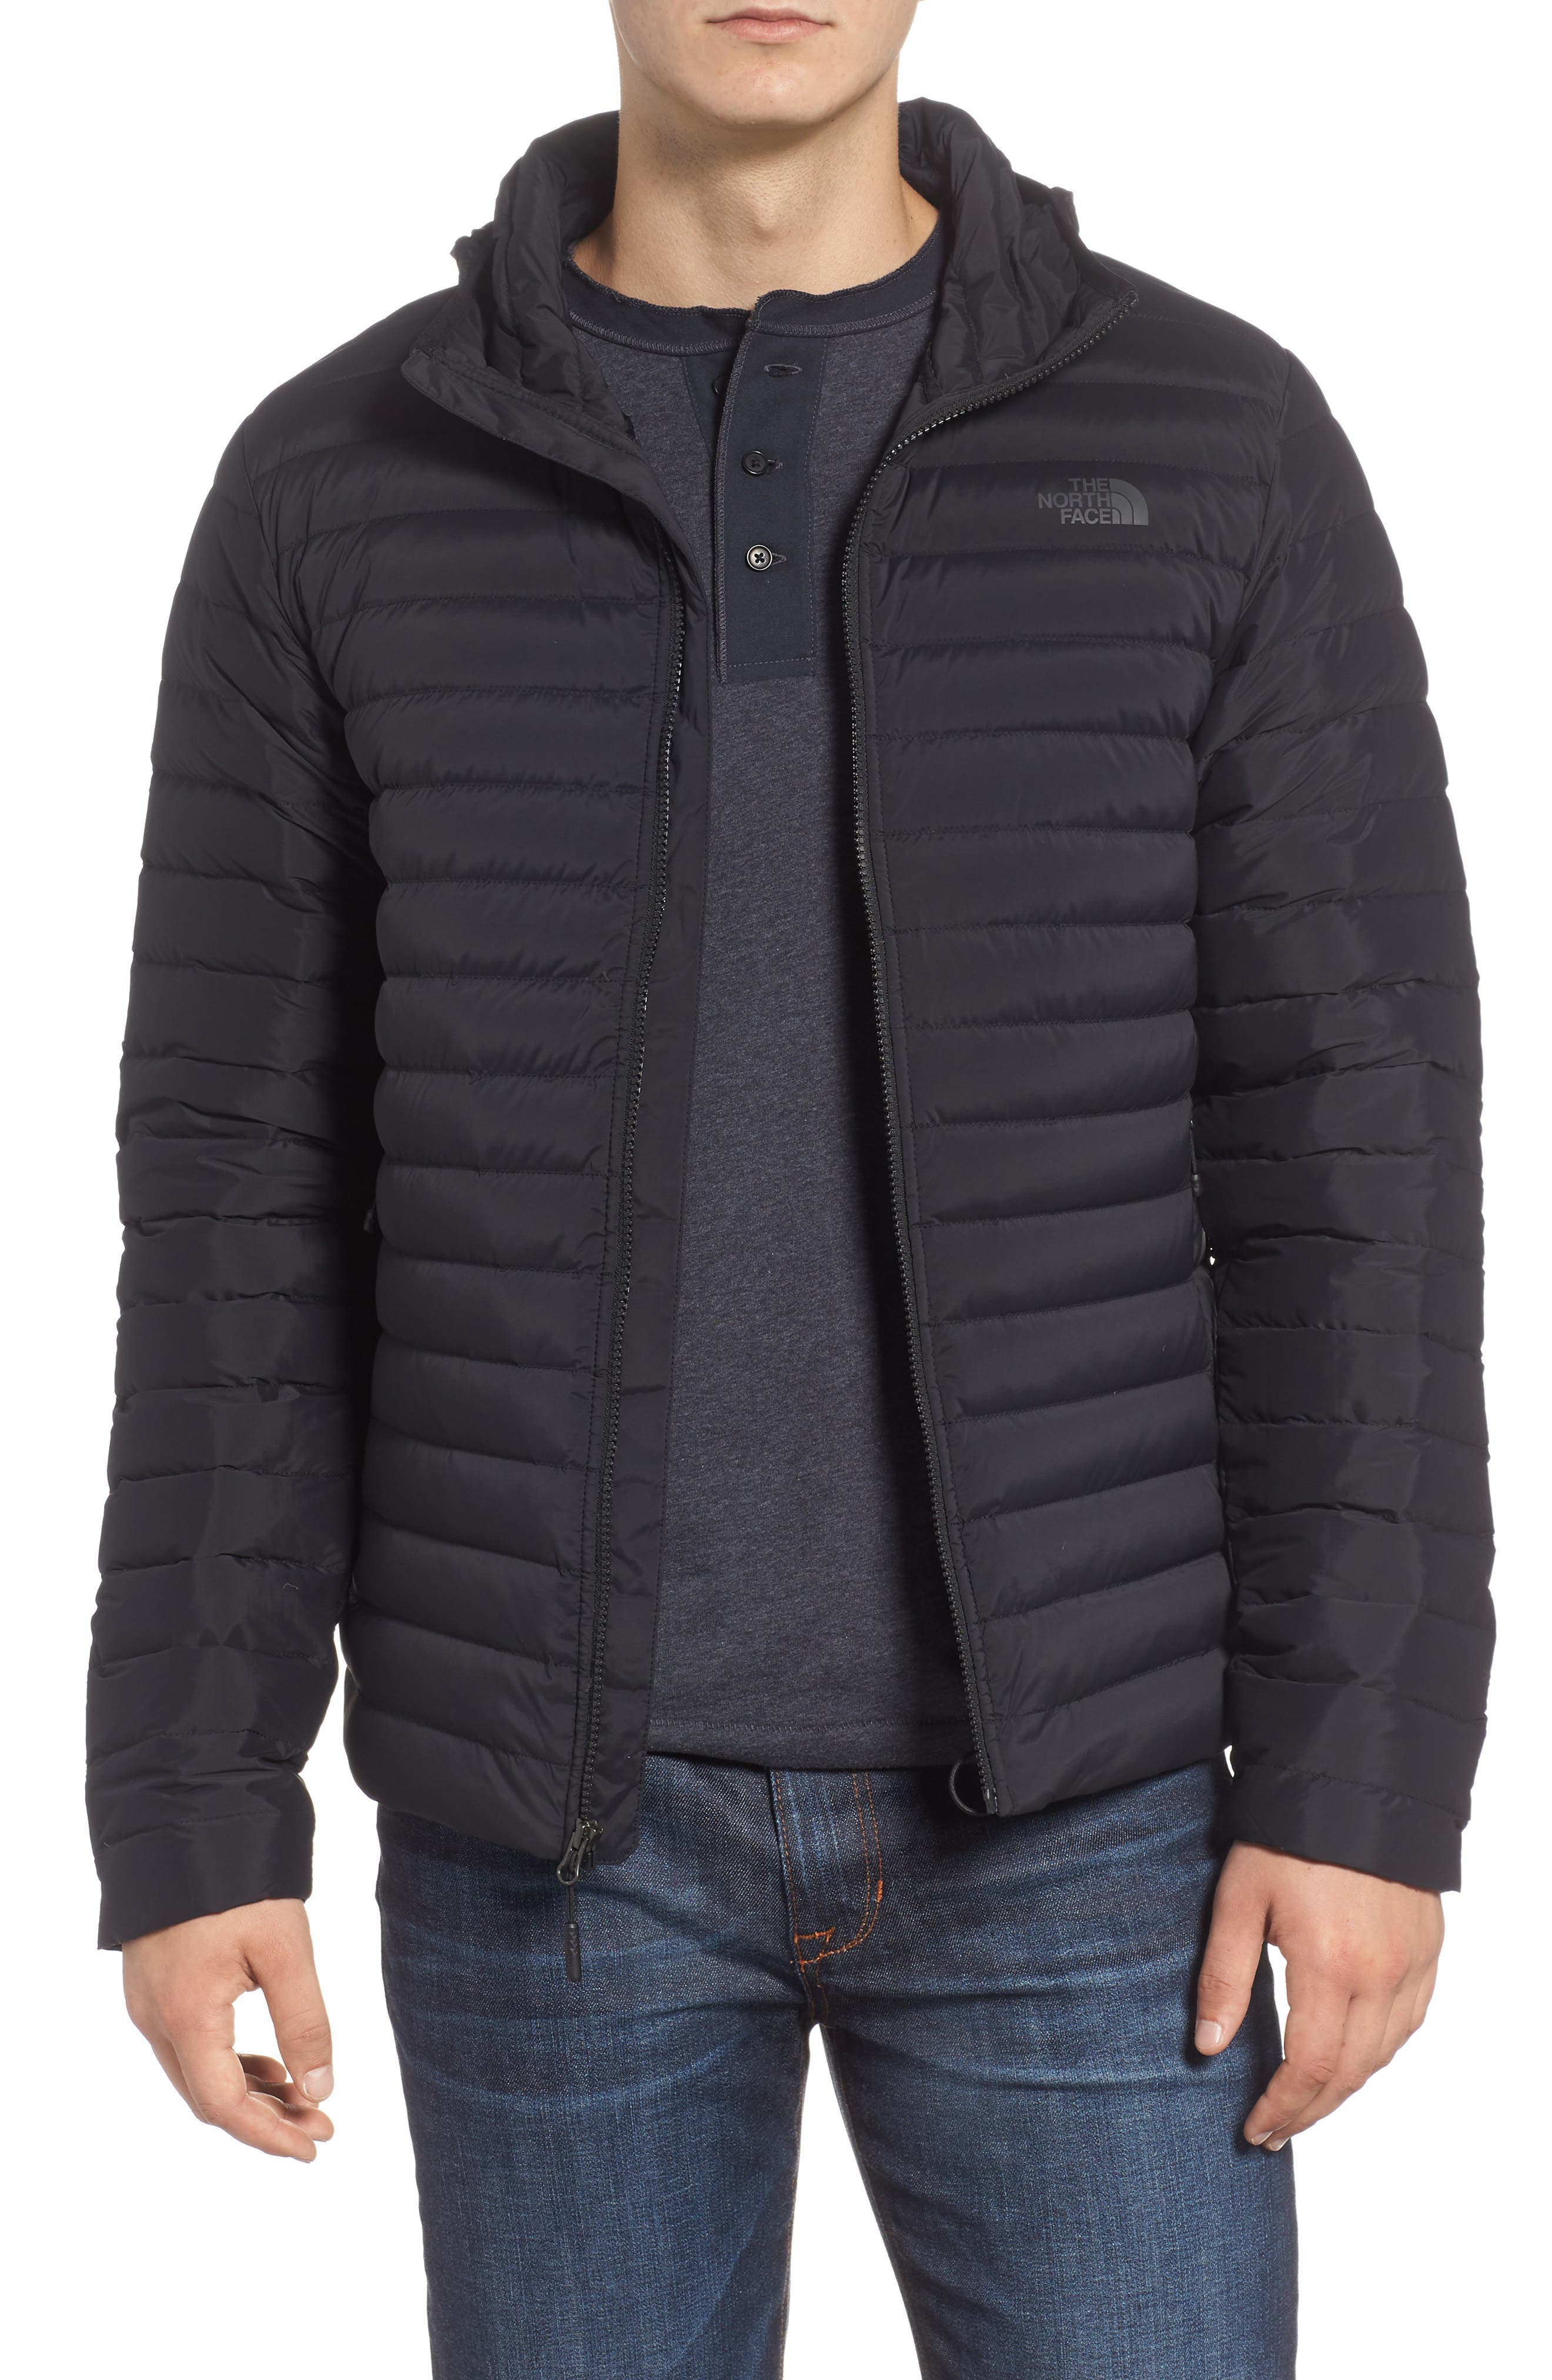 THE NORTH FACE, Packable Stretch Down Hooded Jacket, Main thumbnail 1, color, 001